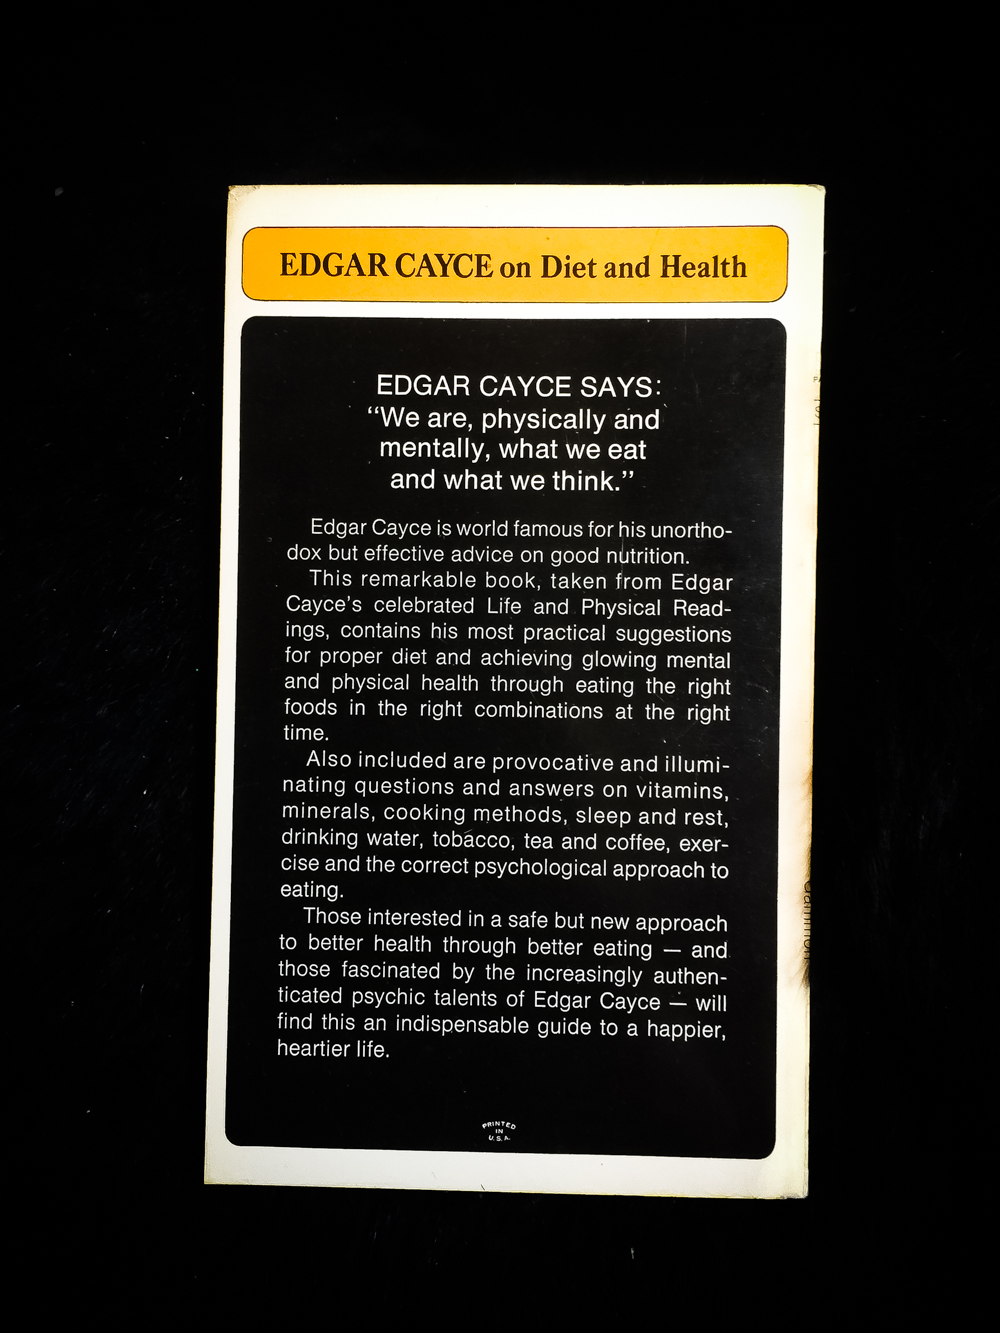 Edgar Cayce on Diet and Health